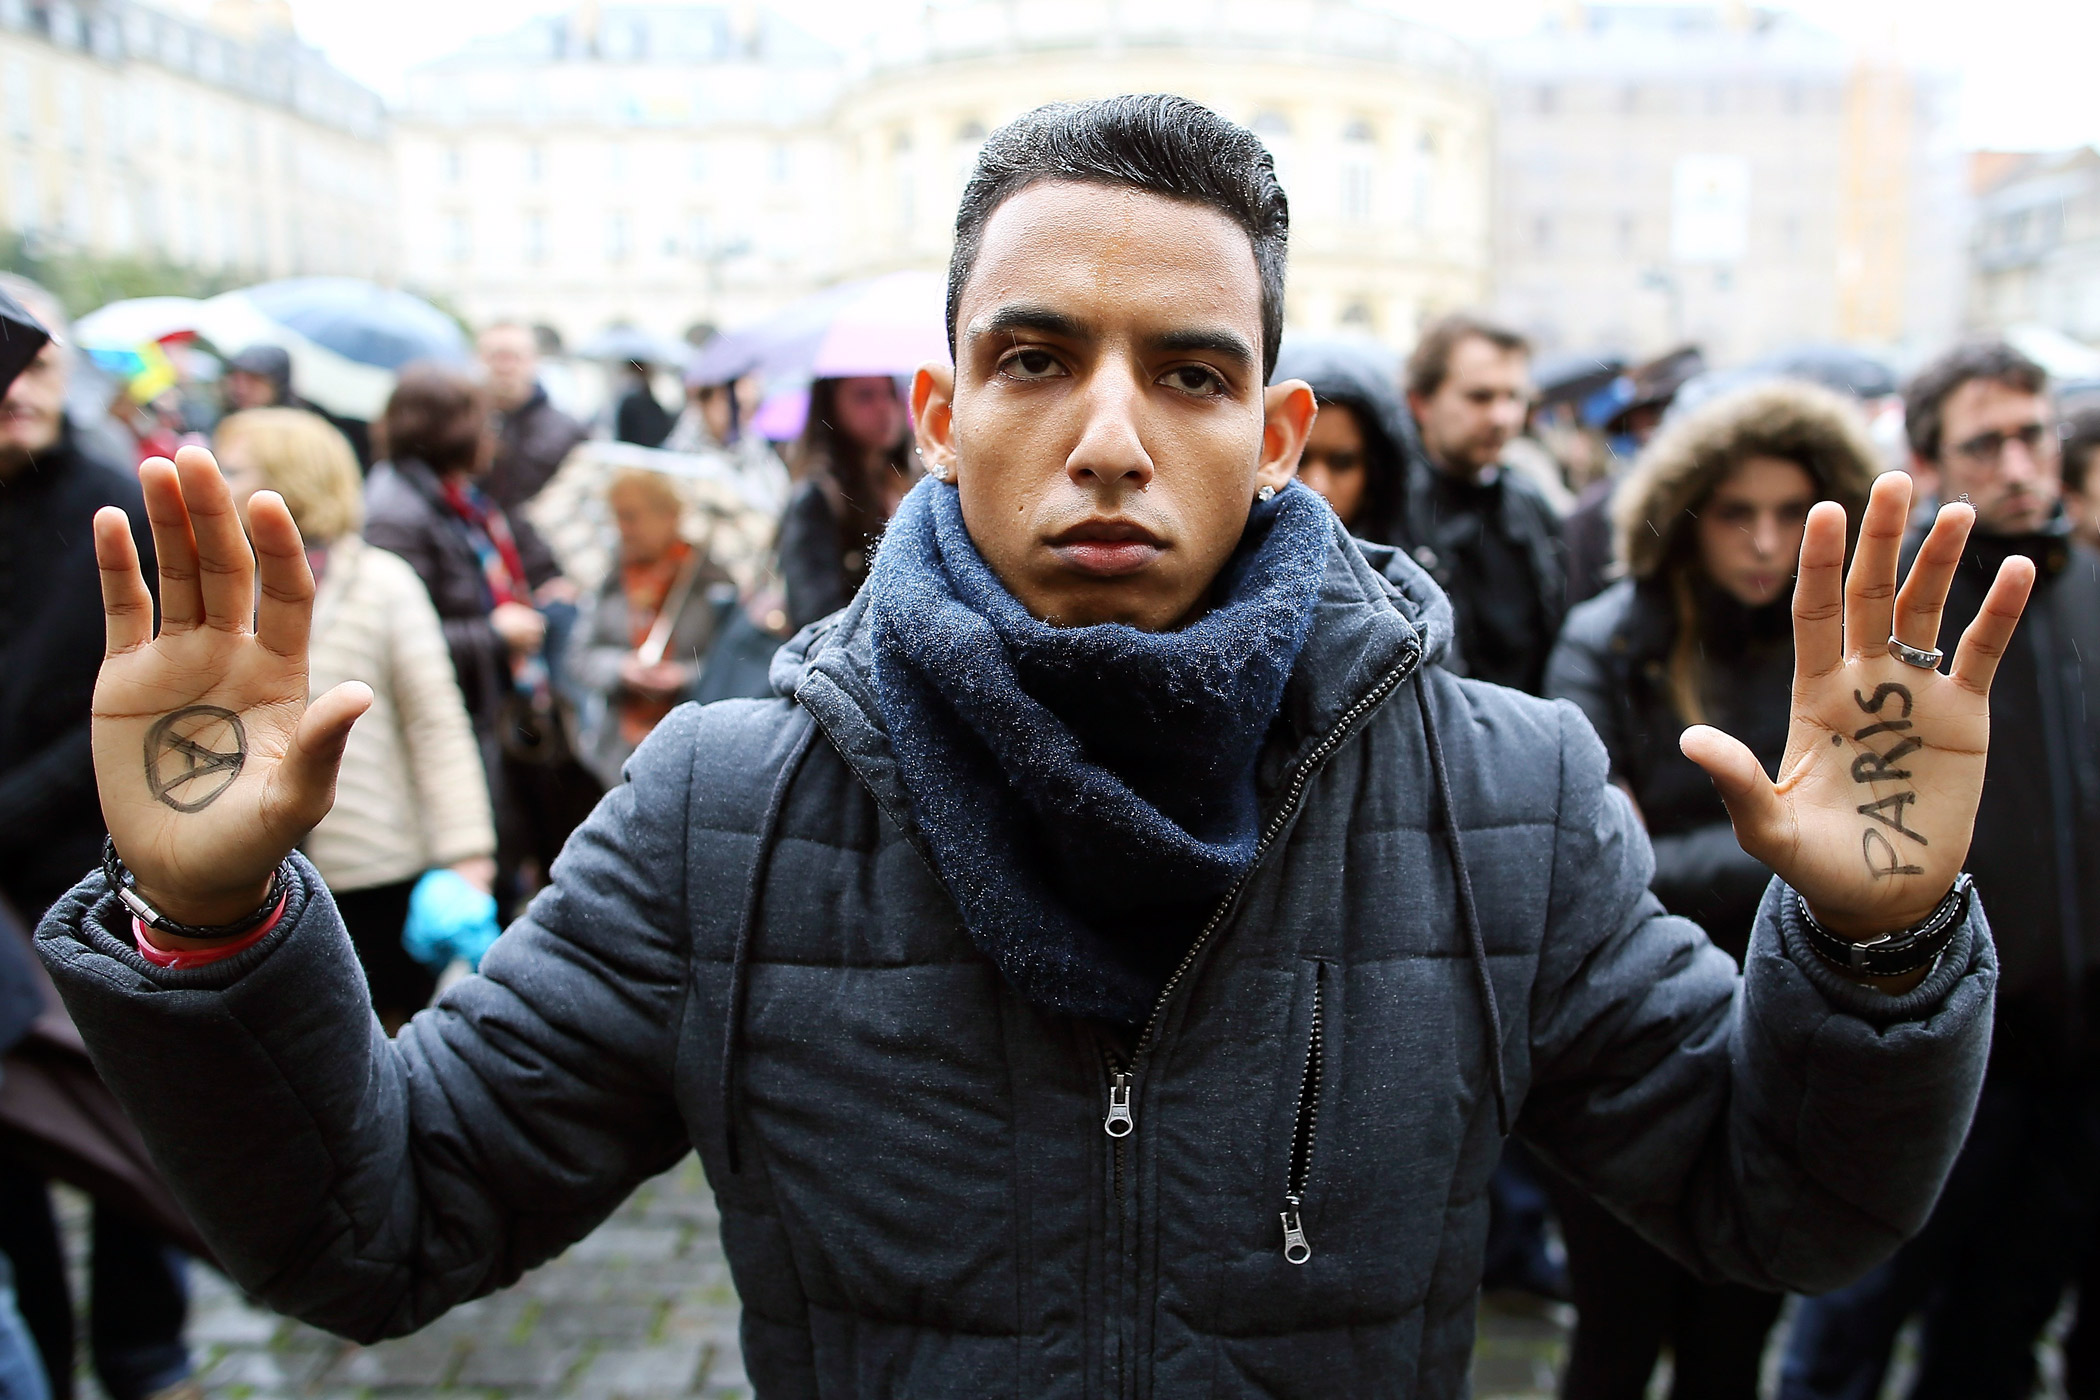 A man holds up his hands during a minute of silence for victims of Paris attacks in Rennes, western France.